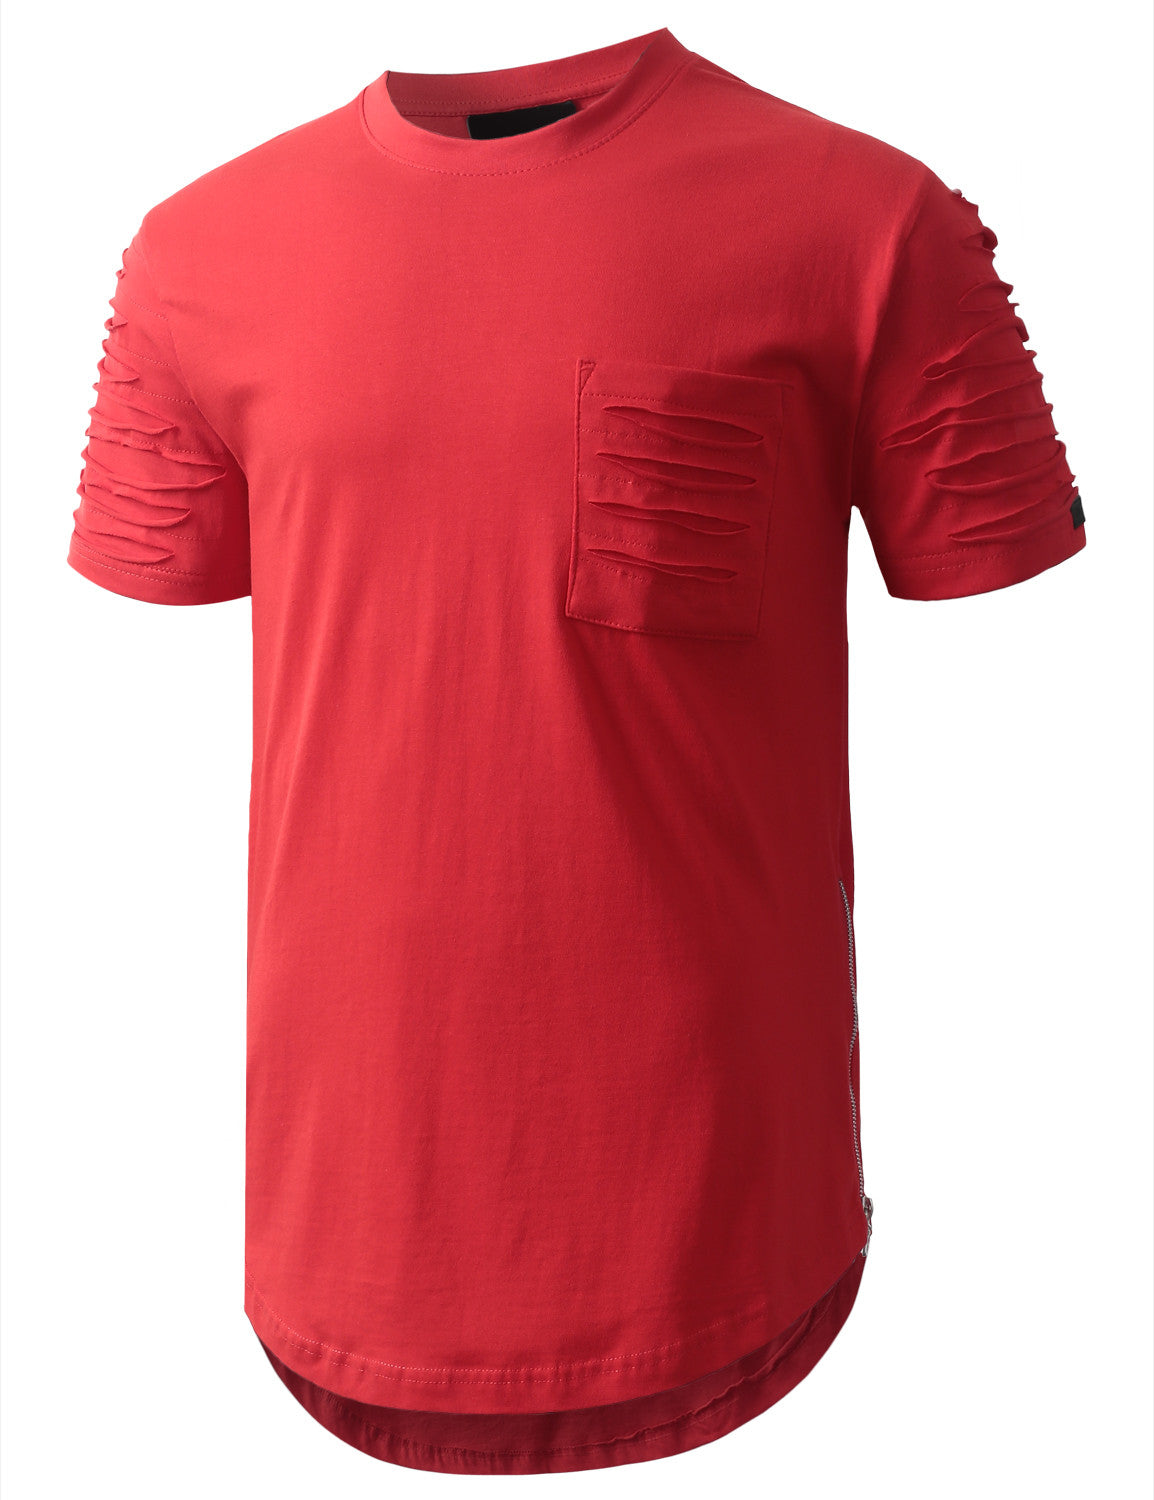 RED Ripped Chest Pocket Longline Crewneck Tshirts